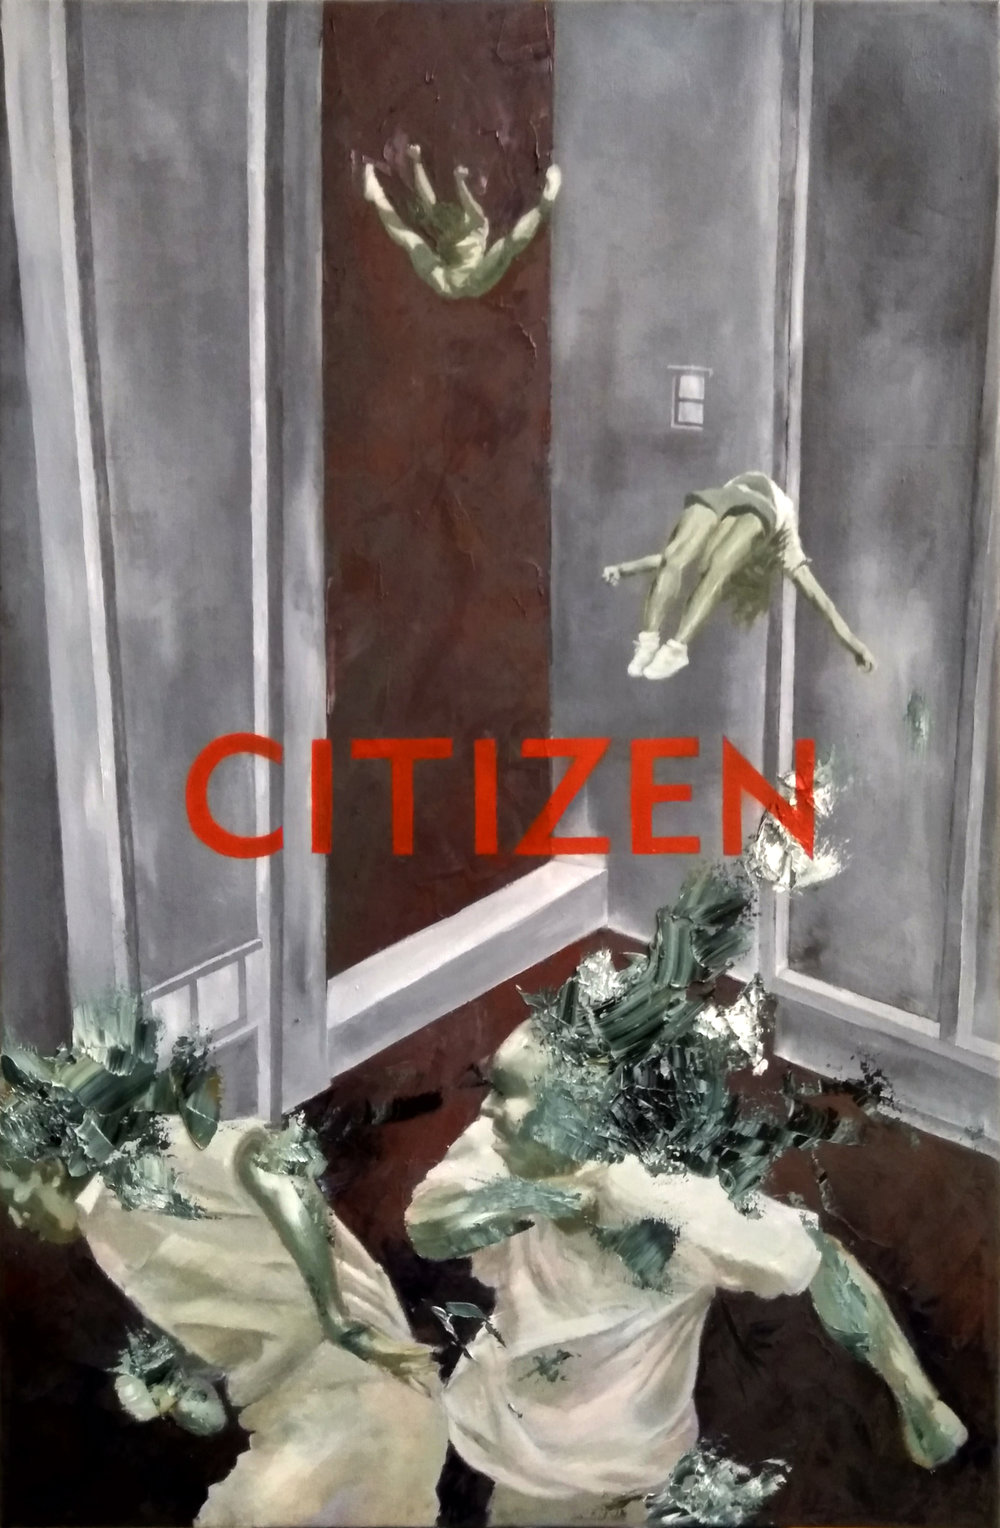 CITIZEN-1   Oil, graphite, ballpoint pen on Permatex Blue Drape